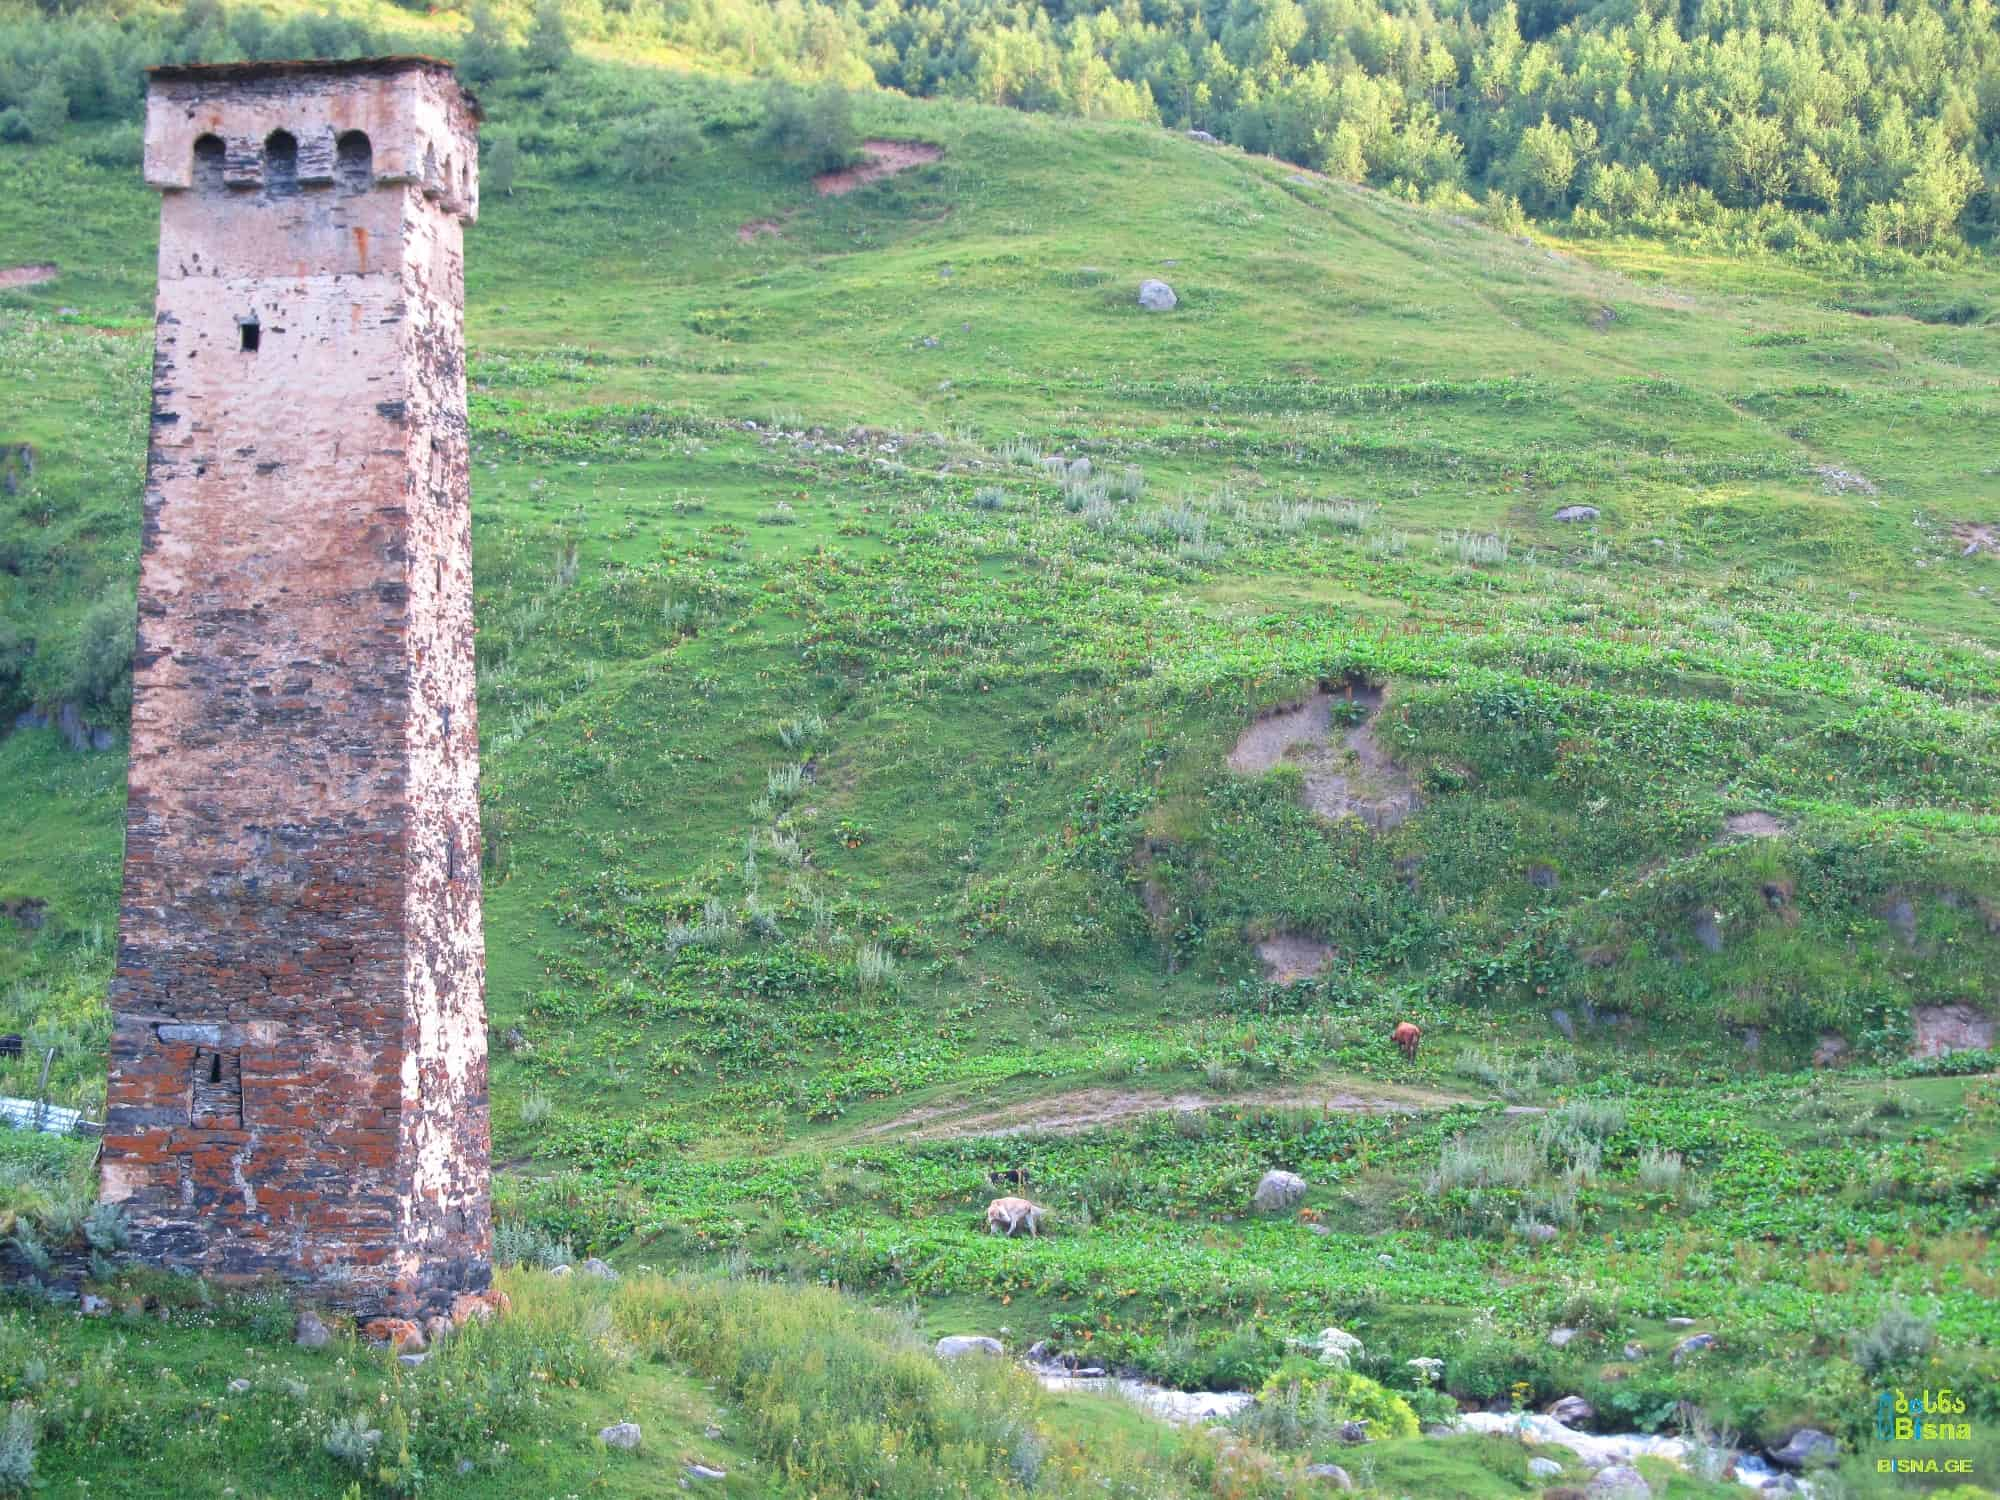 A tower in Ushguli